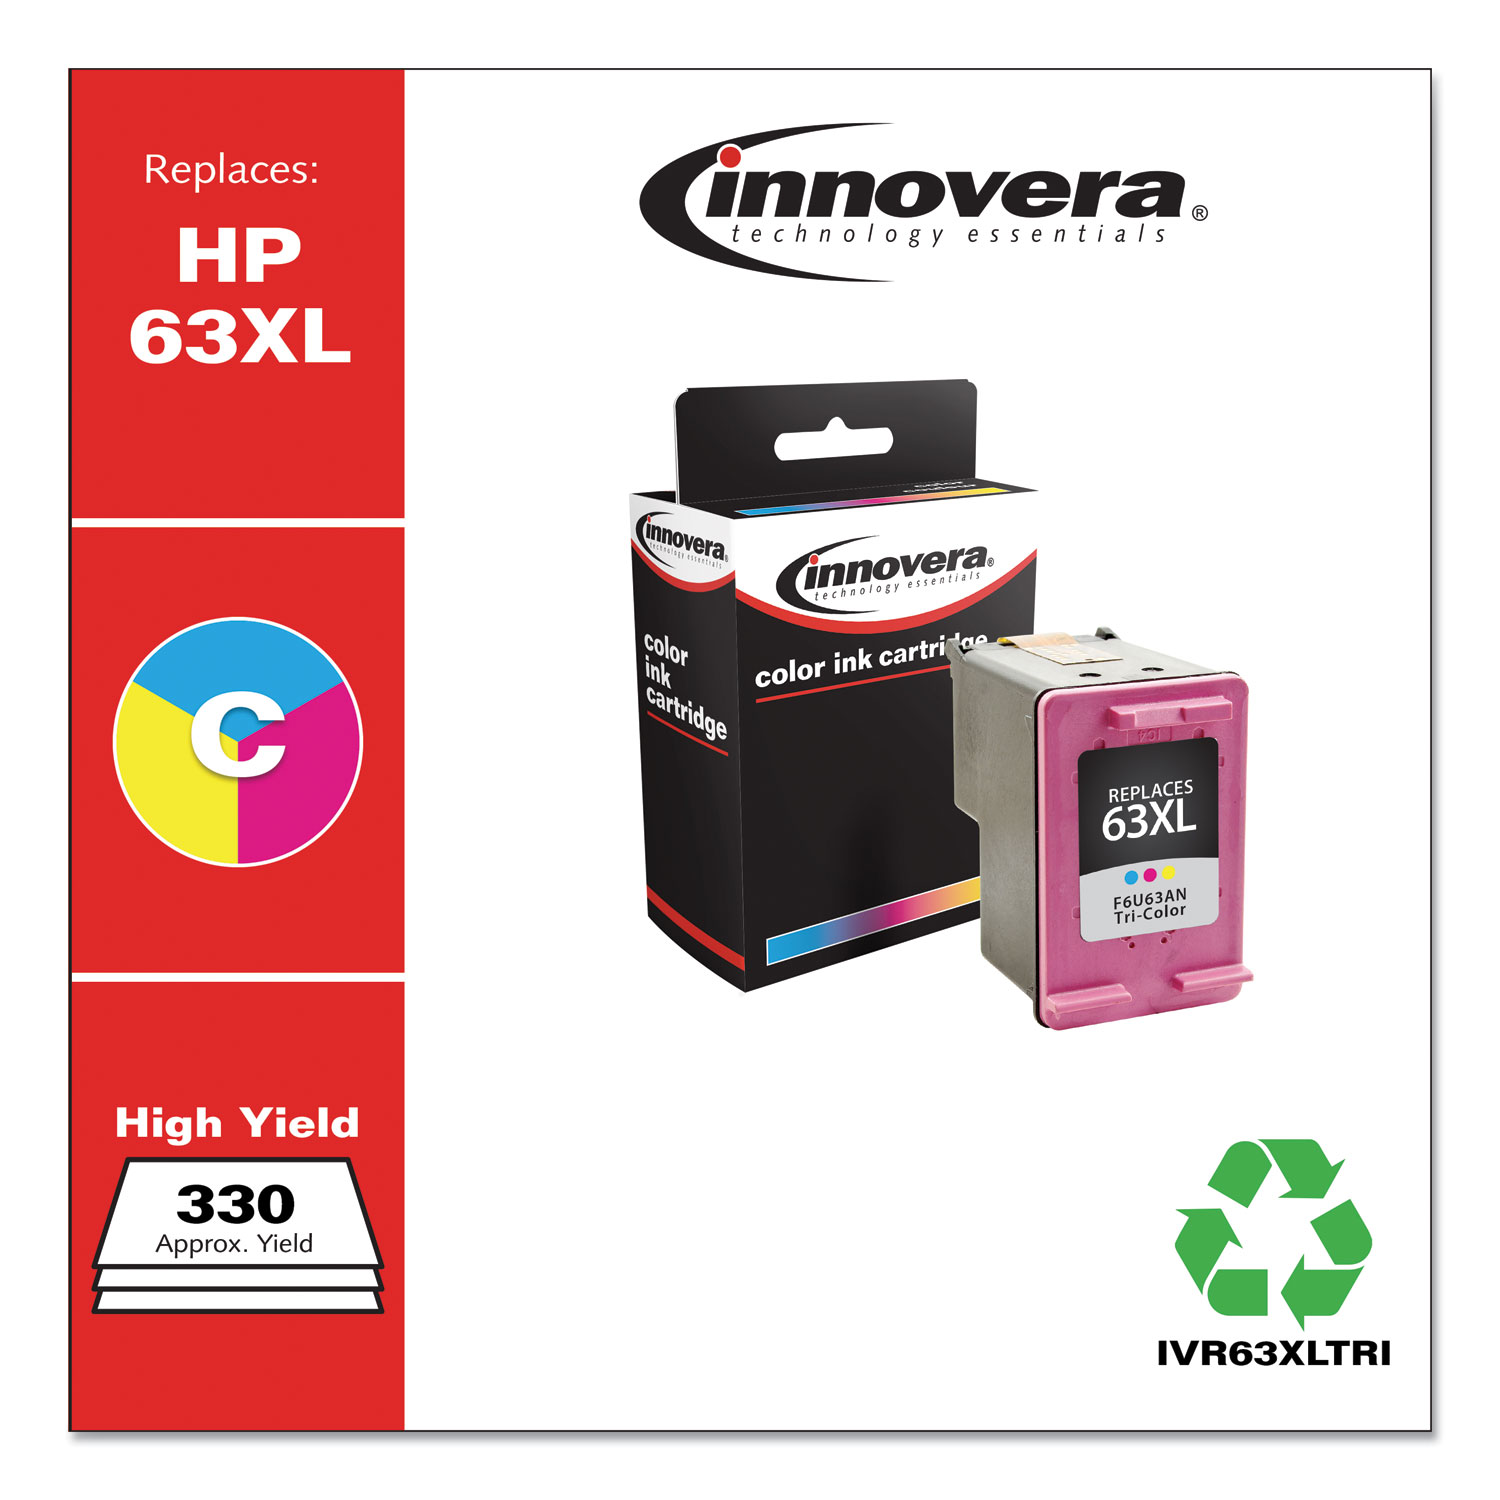 Remanufactured Tri-Color High-Yield Ink, Replacement for HP 63XL (F6U63AN), 330 Page-Yield IVR63XLTRI